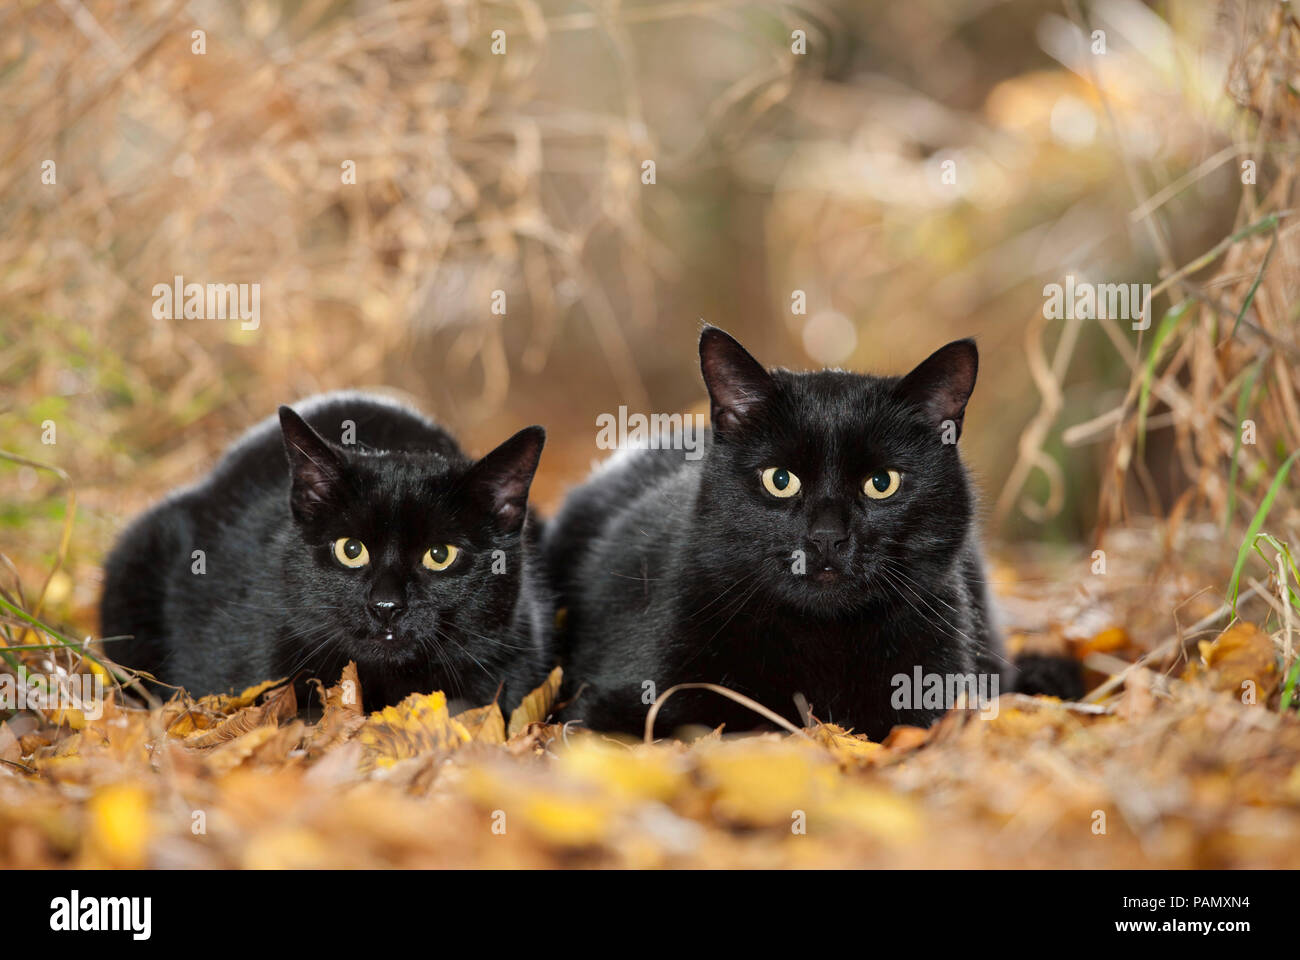 Domestic cat. Pair of black adults lying in leaf litter. Germany - Stock Image